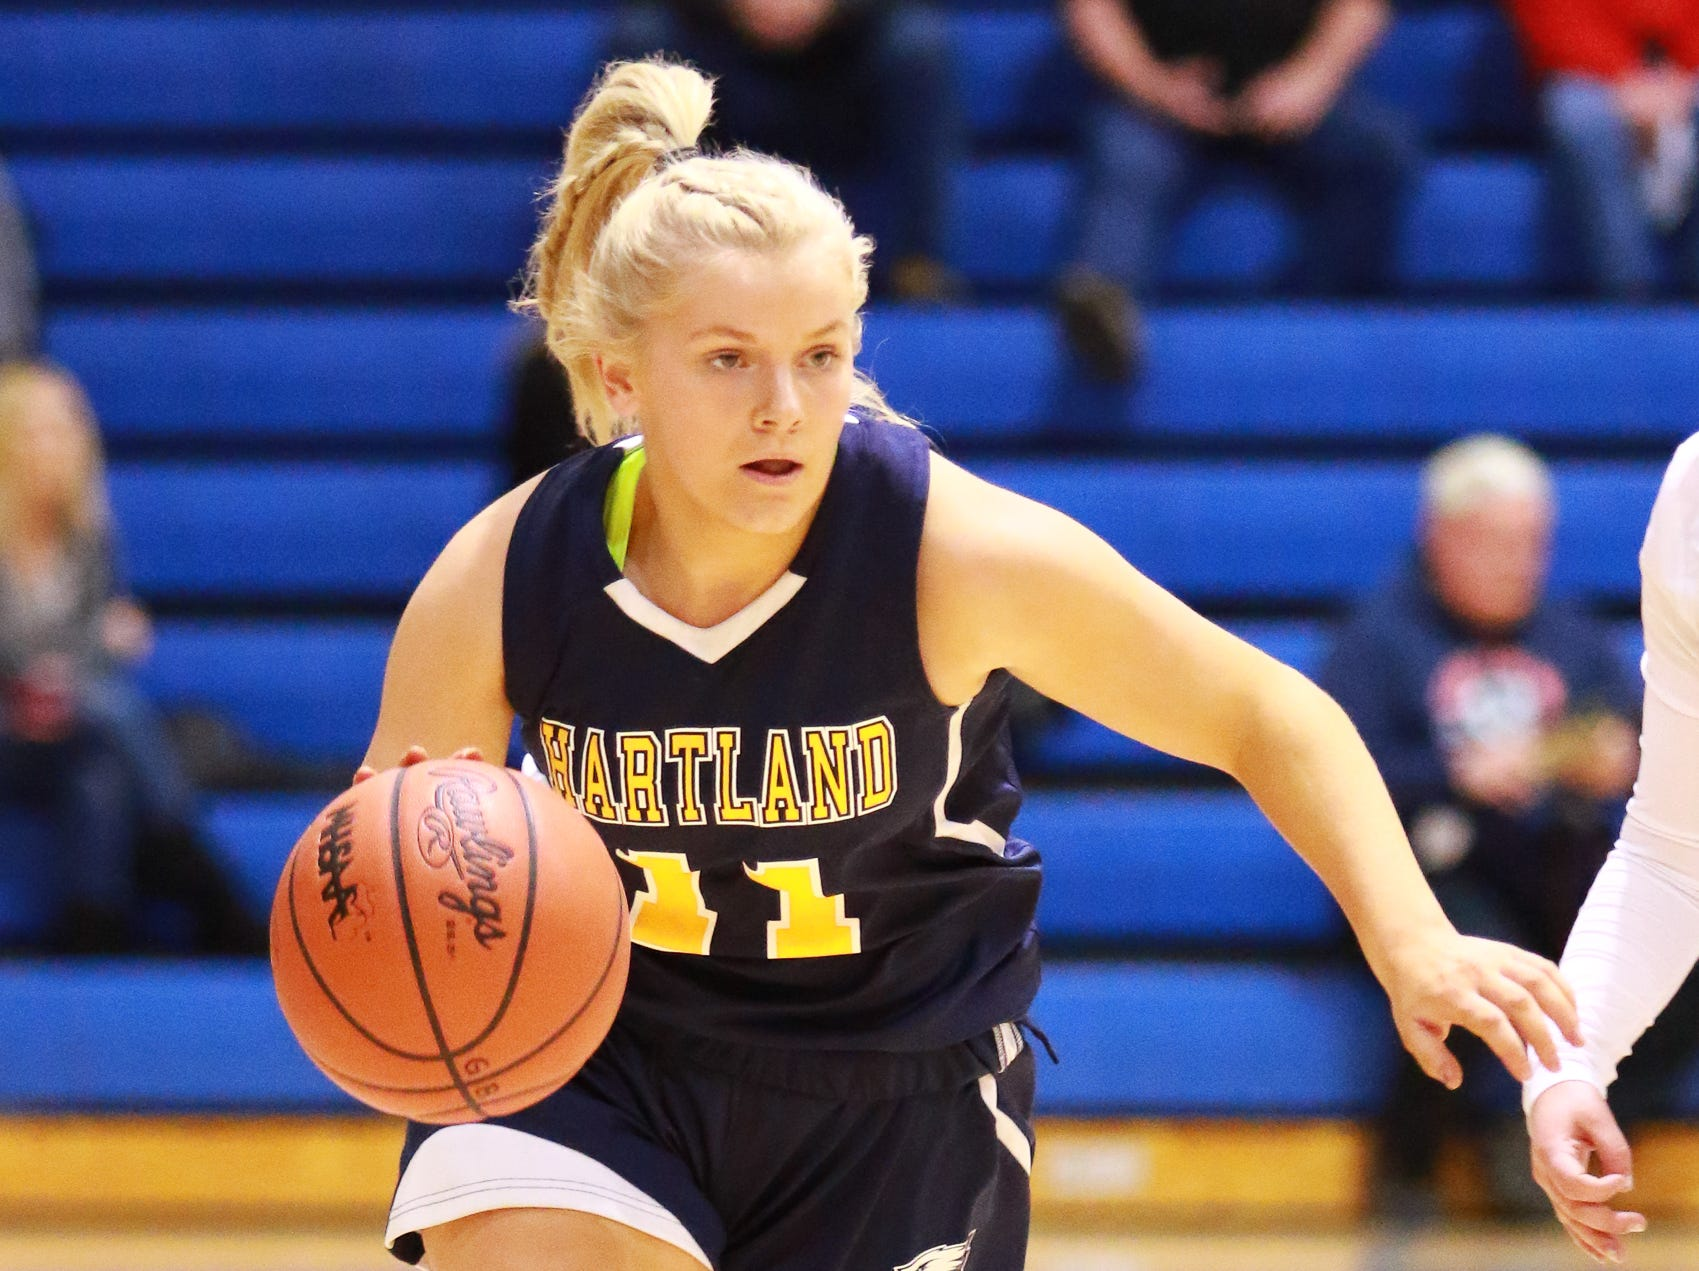 Hartland's Amanda Roach brings the ball up the floor in a 50-46 victory over Walled Lake Western in a regional championship basketball game at Lakeland on Wednesday, March 13, 2019.